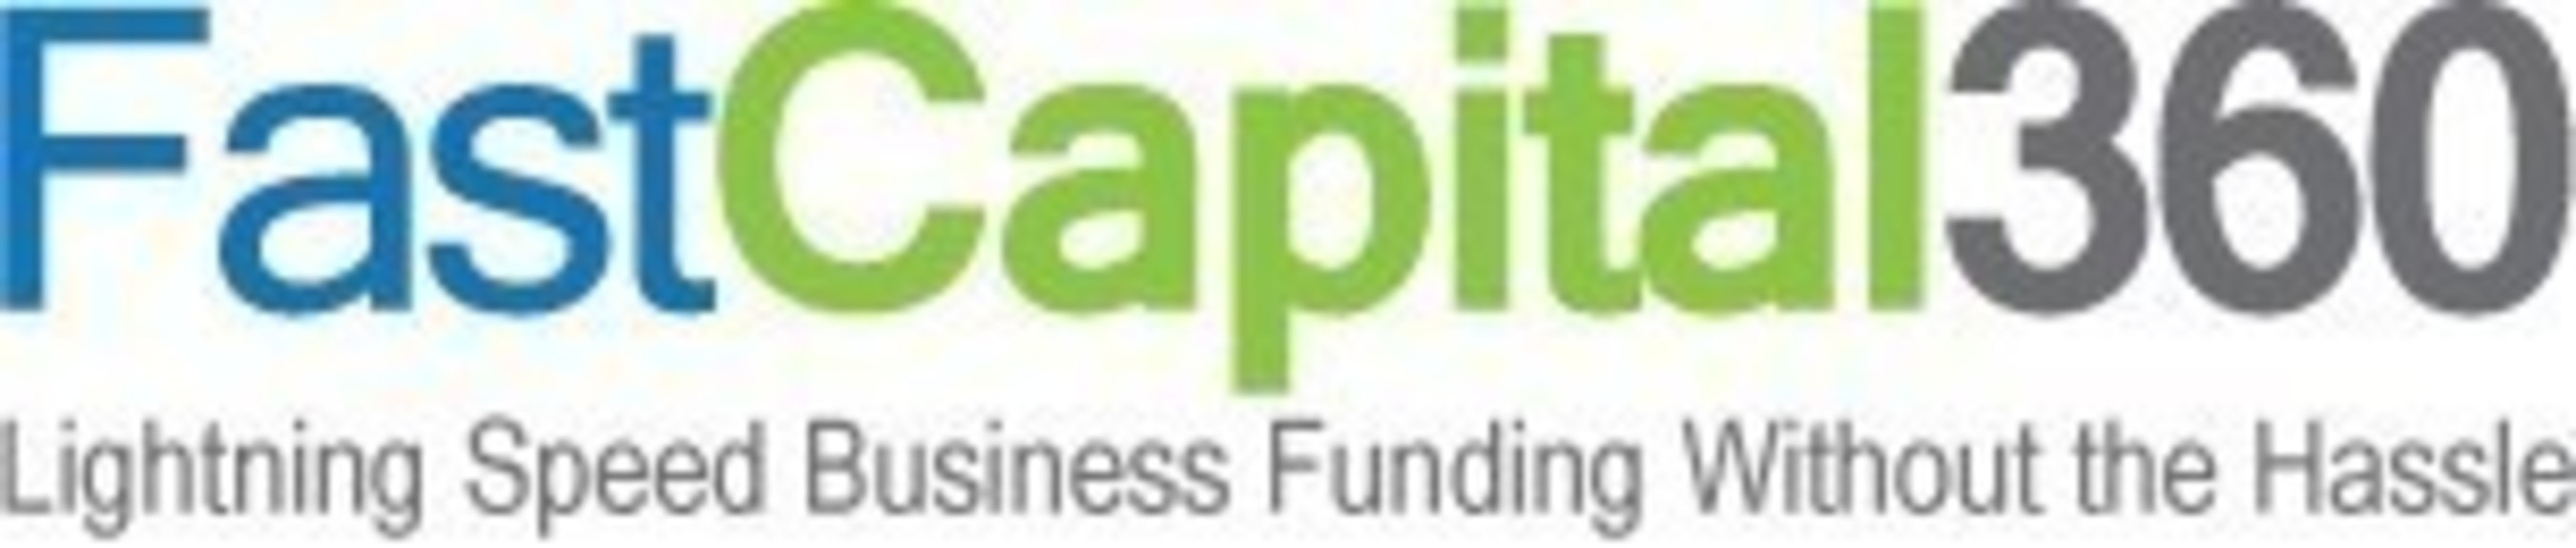 Fast Capital 360 Celebrates Its Third Anniversary With a New Philanthropy Project